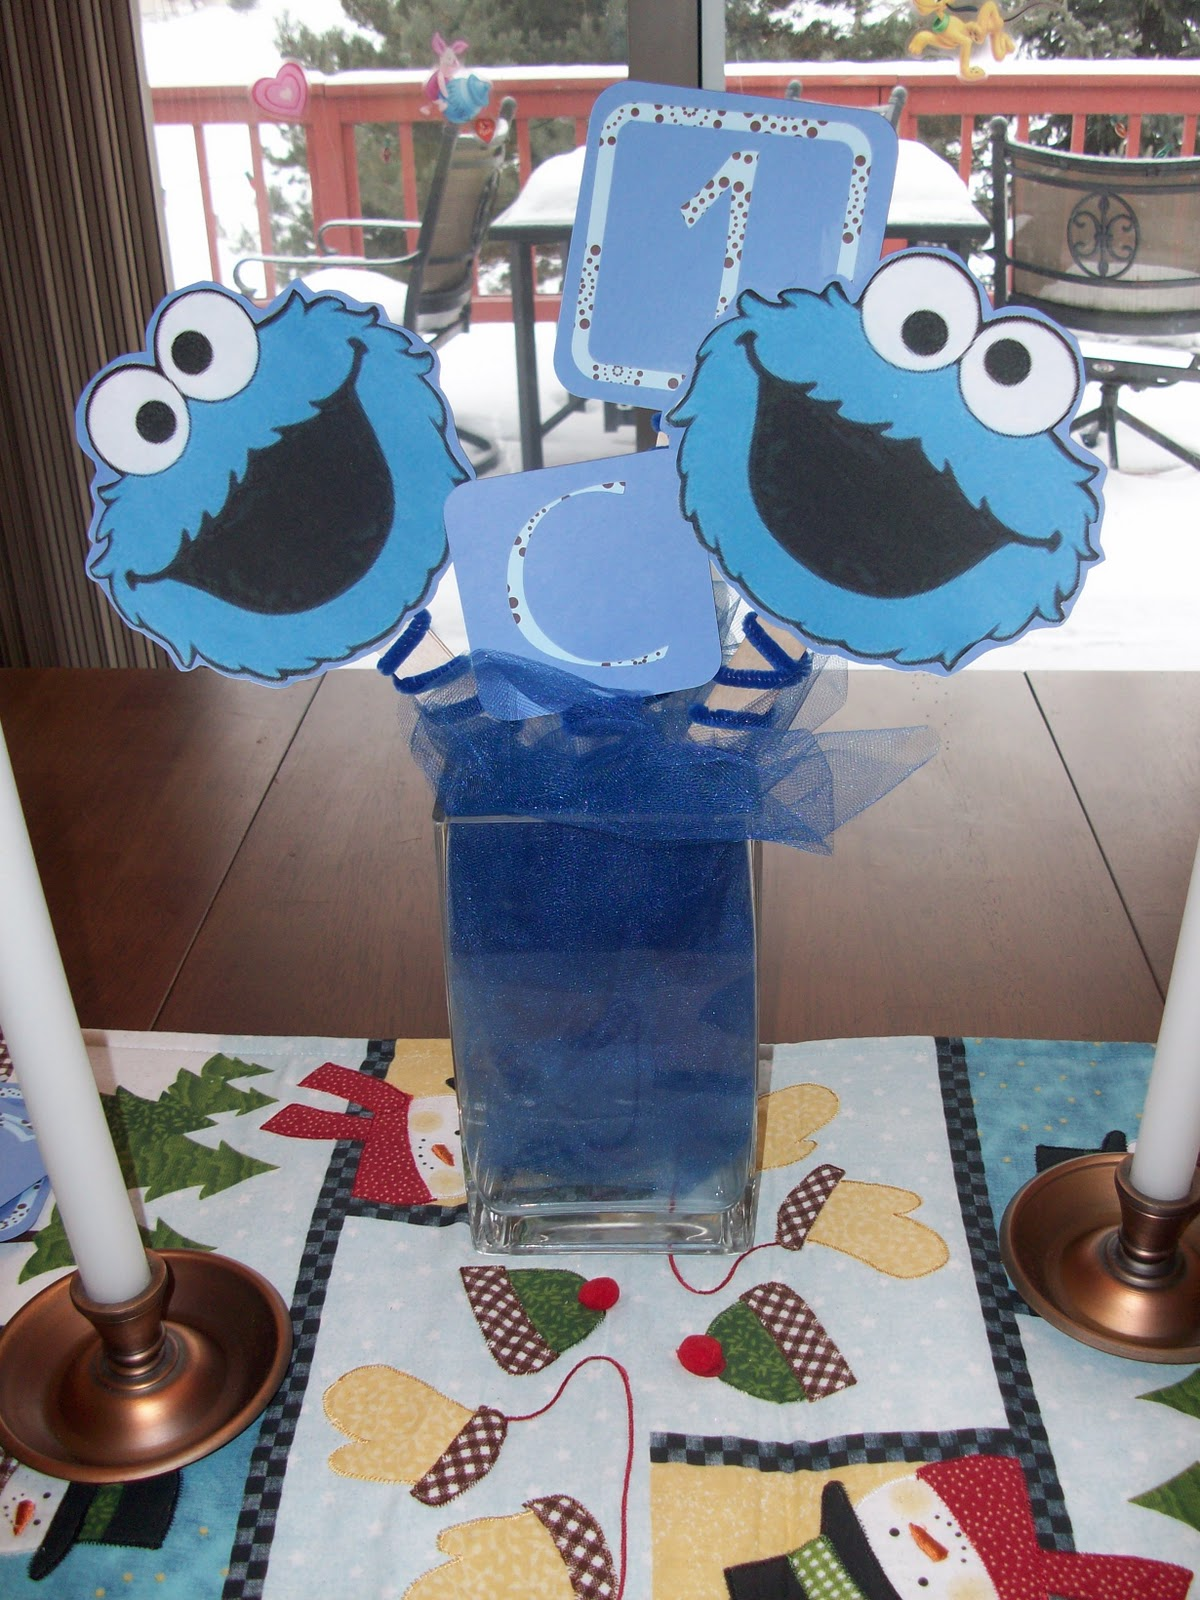 Ordinary Magic Cookie Monster themed Birthday Party